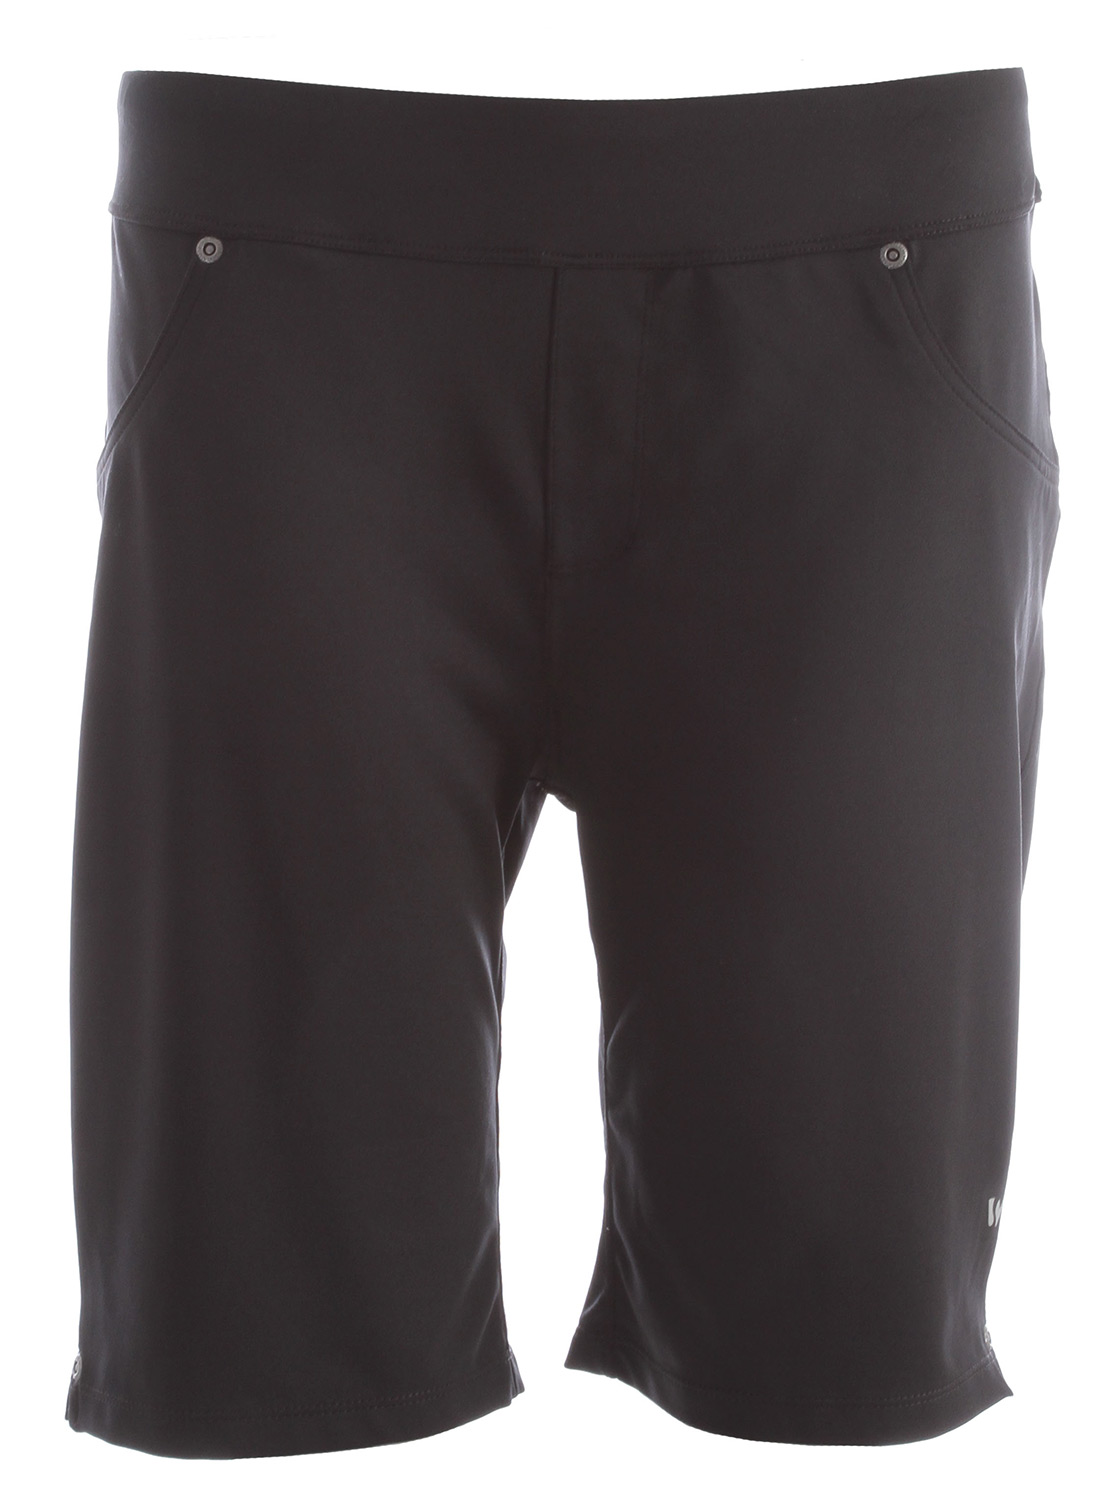 "Camp and Hike Key Features of the White Sierra Knit Hiking Shorts: SIERRA FLEX 88% polyester 12% elastane jersey knit heathered and solid Sun protection fabric Wicking Travel friendly Faux front pockets Back patch pockets Fabric weight: 4oz Inseam: 9"" - $26.95"